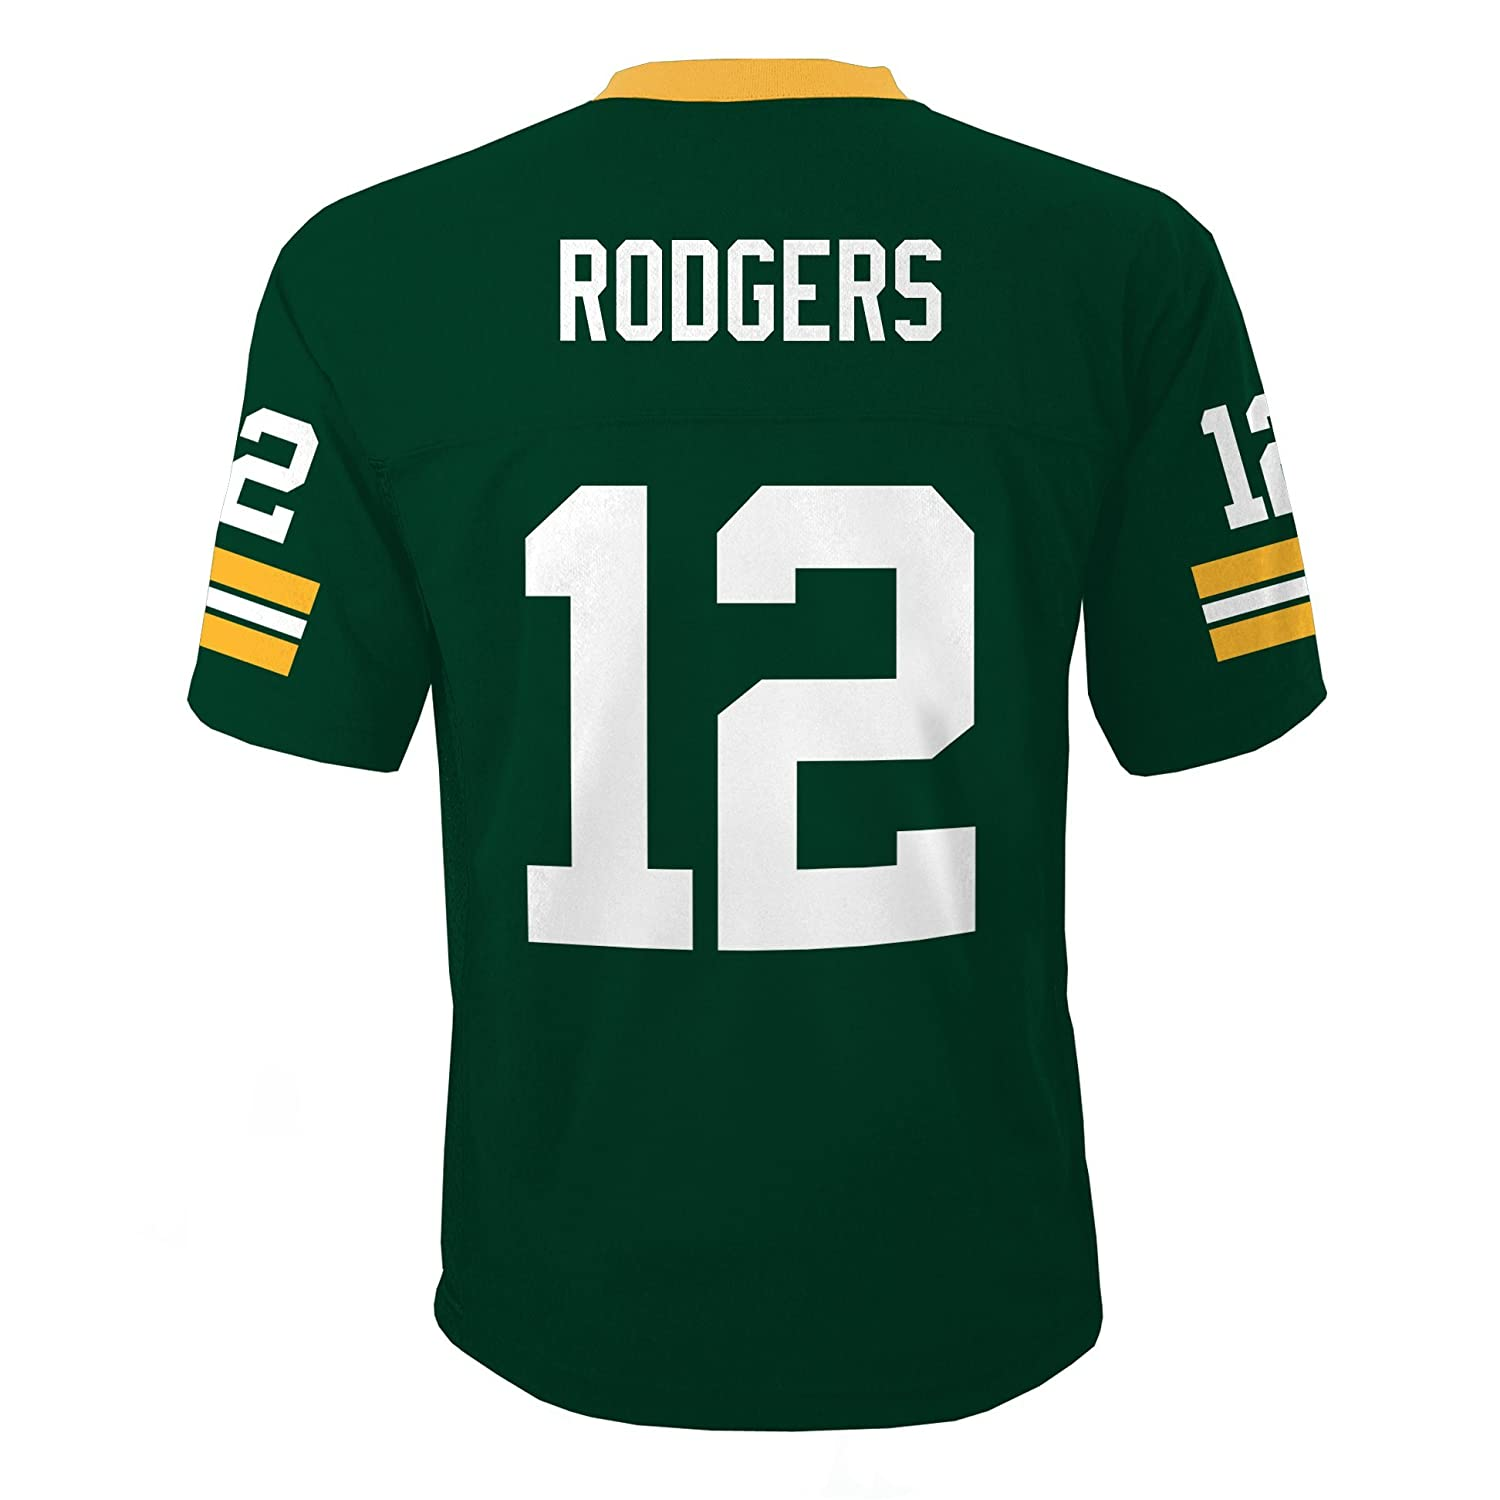 Outerstuff NFL Green Bay Packers Aaron Rodgers Boys 4-7 Mid-Tier Jersey